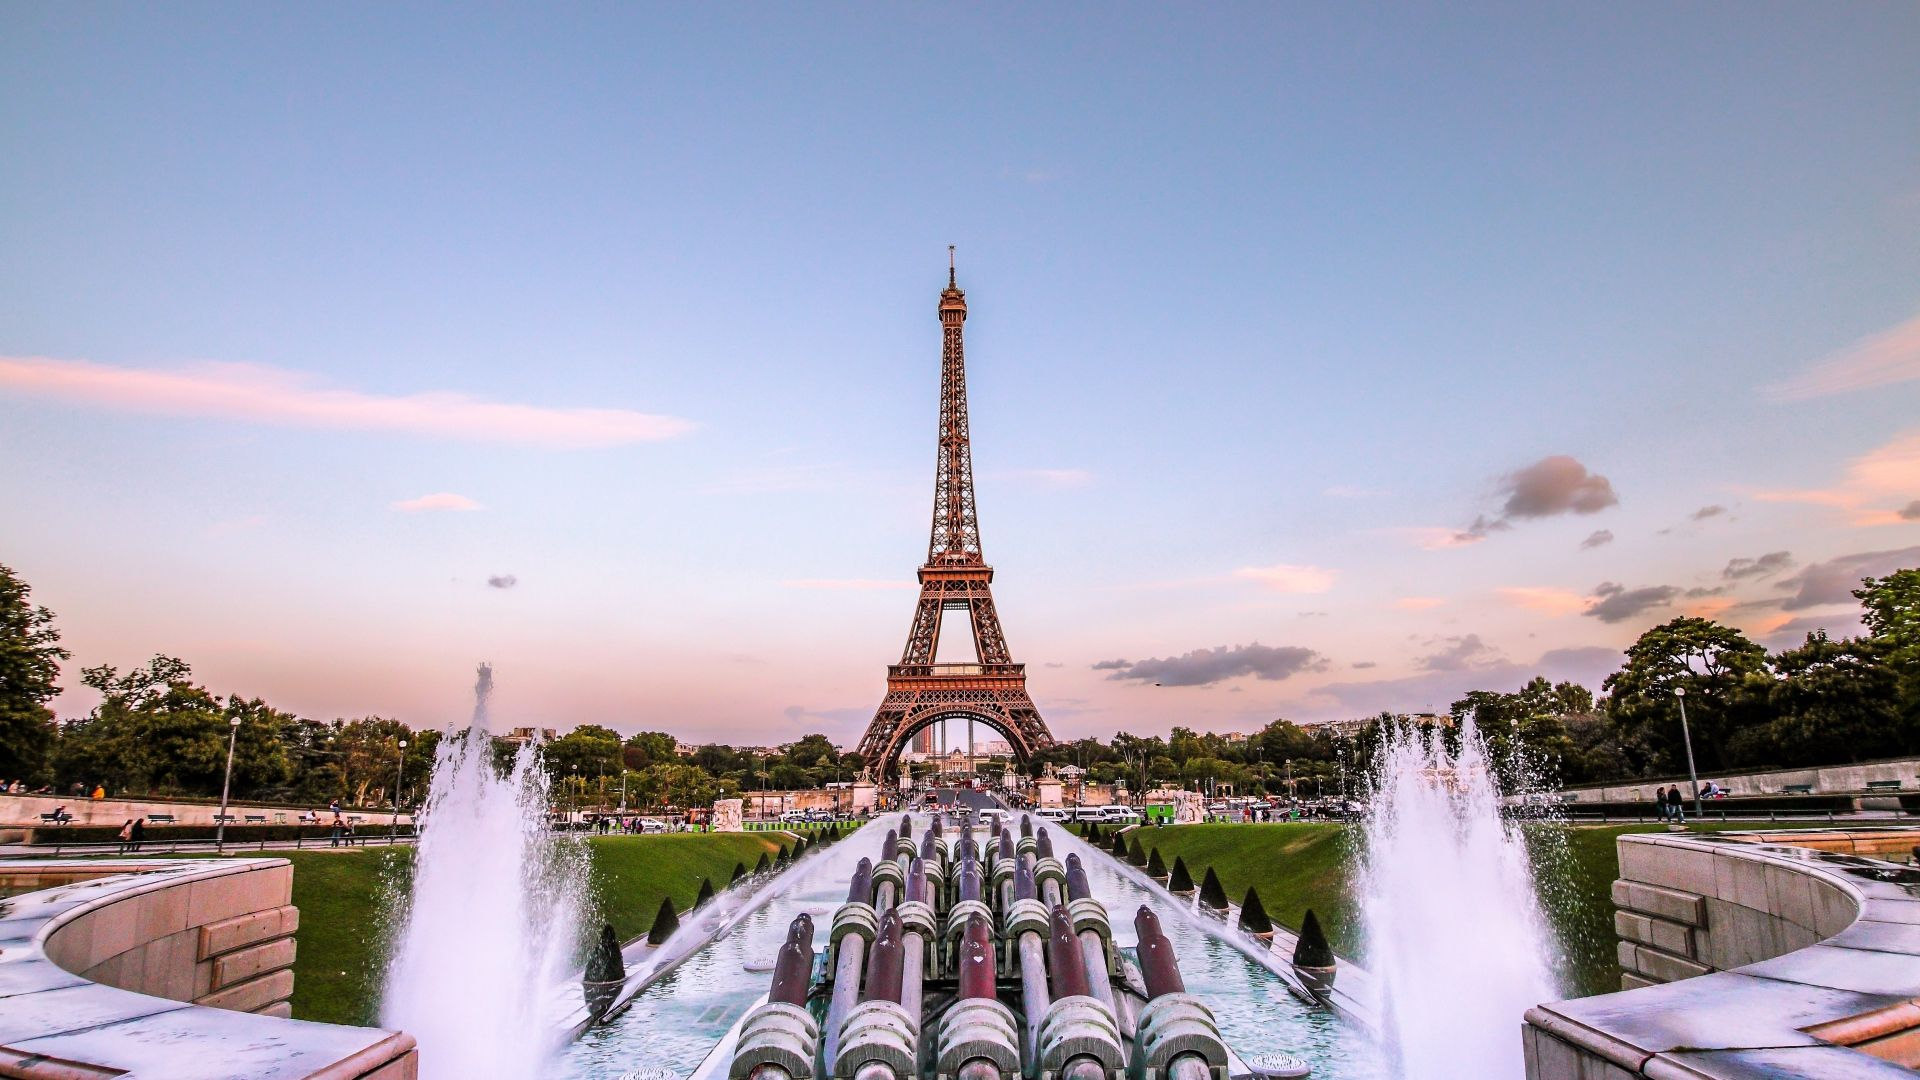 Paris Eiffel Tower Wallpapers | Eiffel Tower Latest Hd Wallpaprs